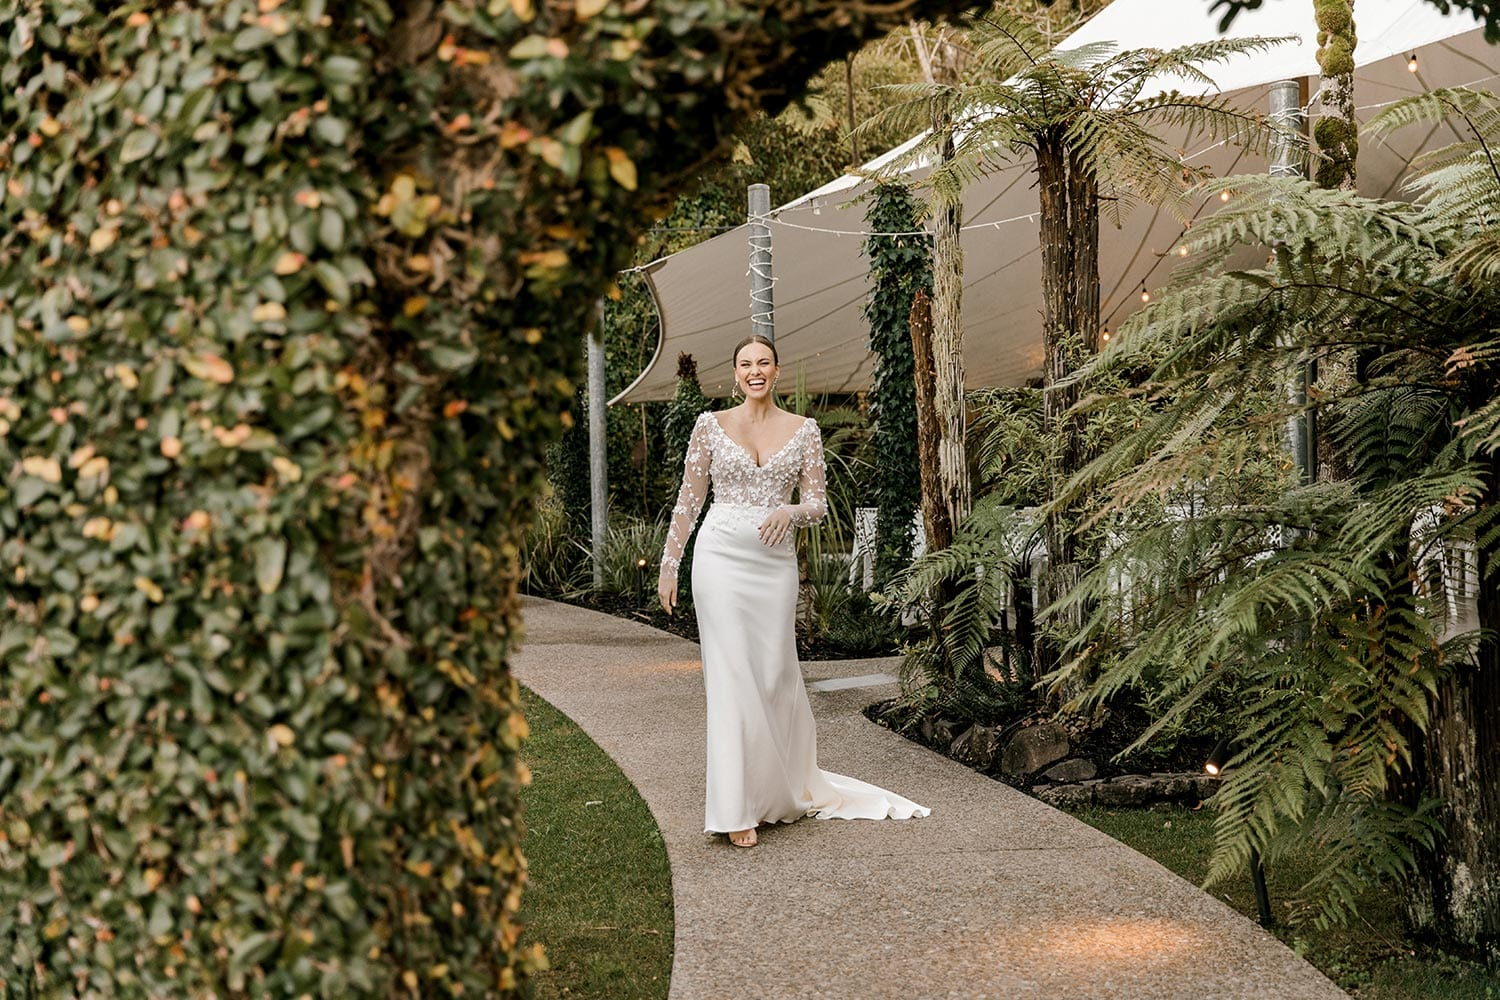 Celeste Wedding Dress from Vinka Design. Gorgeous form fitting stretch fabric wedding dress. The bodice is nude & semi-sheer, featuring 3-D beaded leaf lace, a deep V-neckline and a low V-shaped back with long sleeves. Model walking through archway, photographed at Tui Hills by Emmaline Photography.